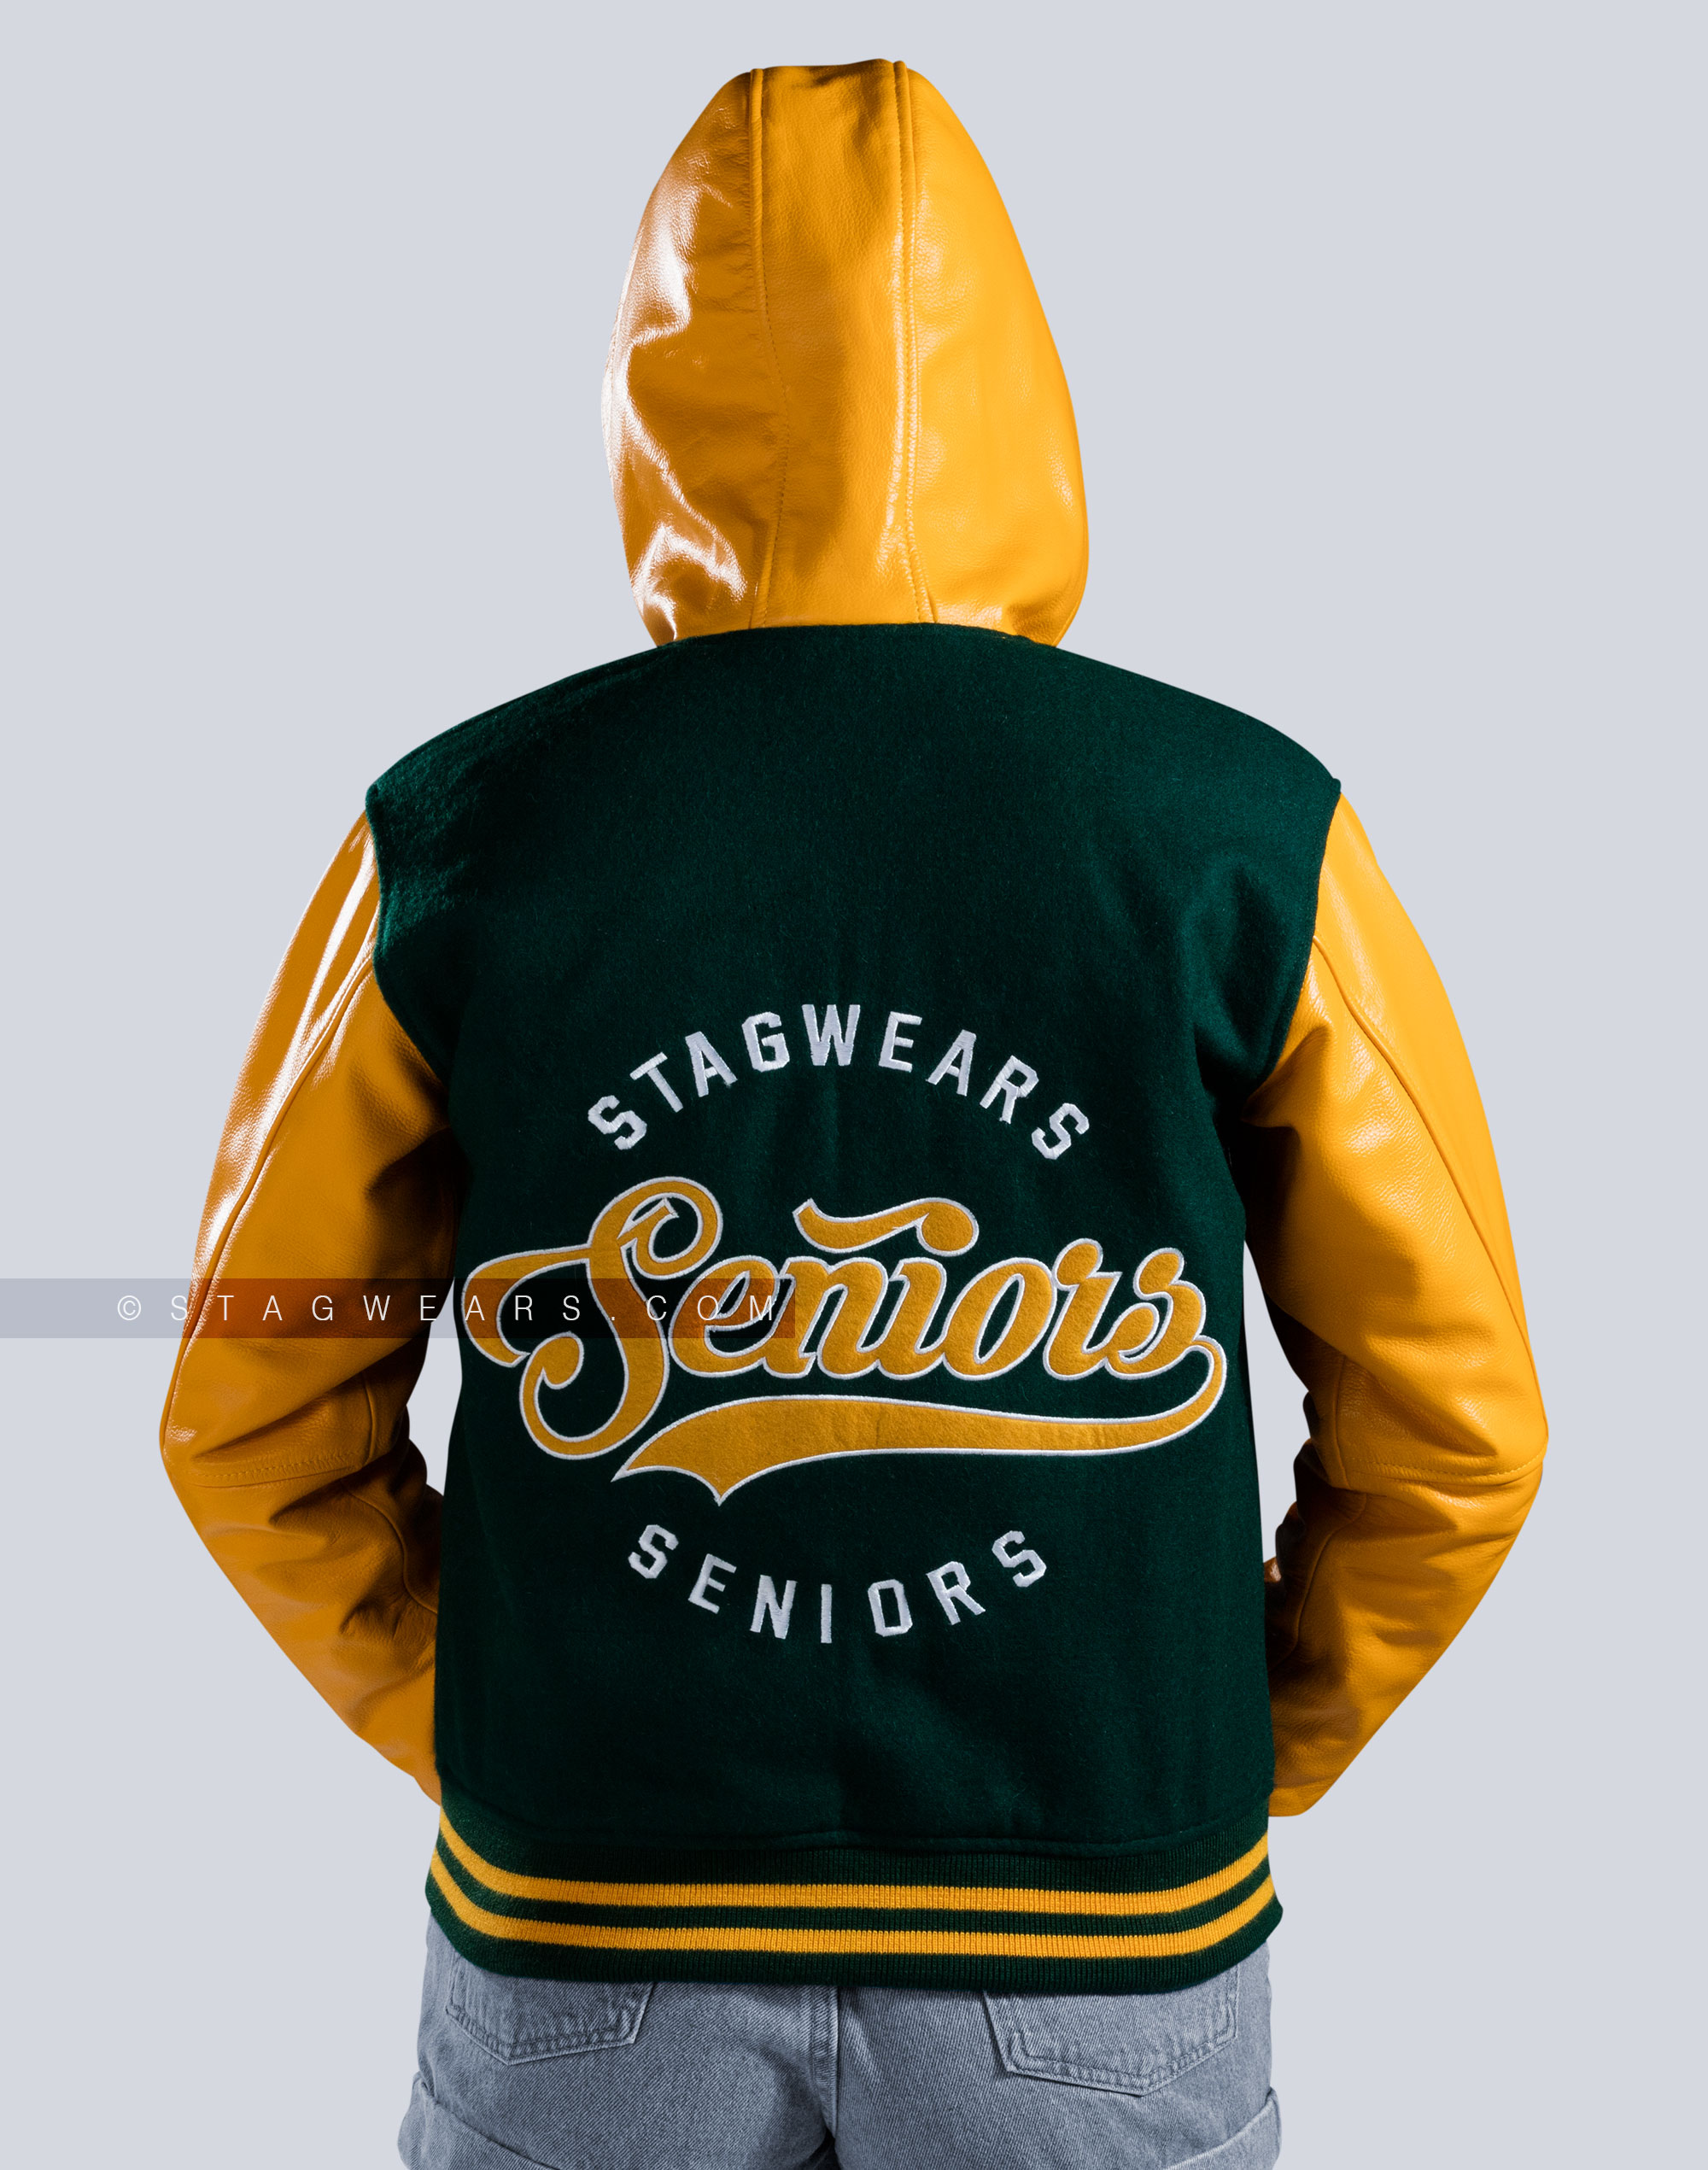 Letterman hoodies